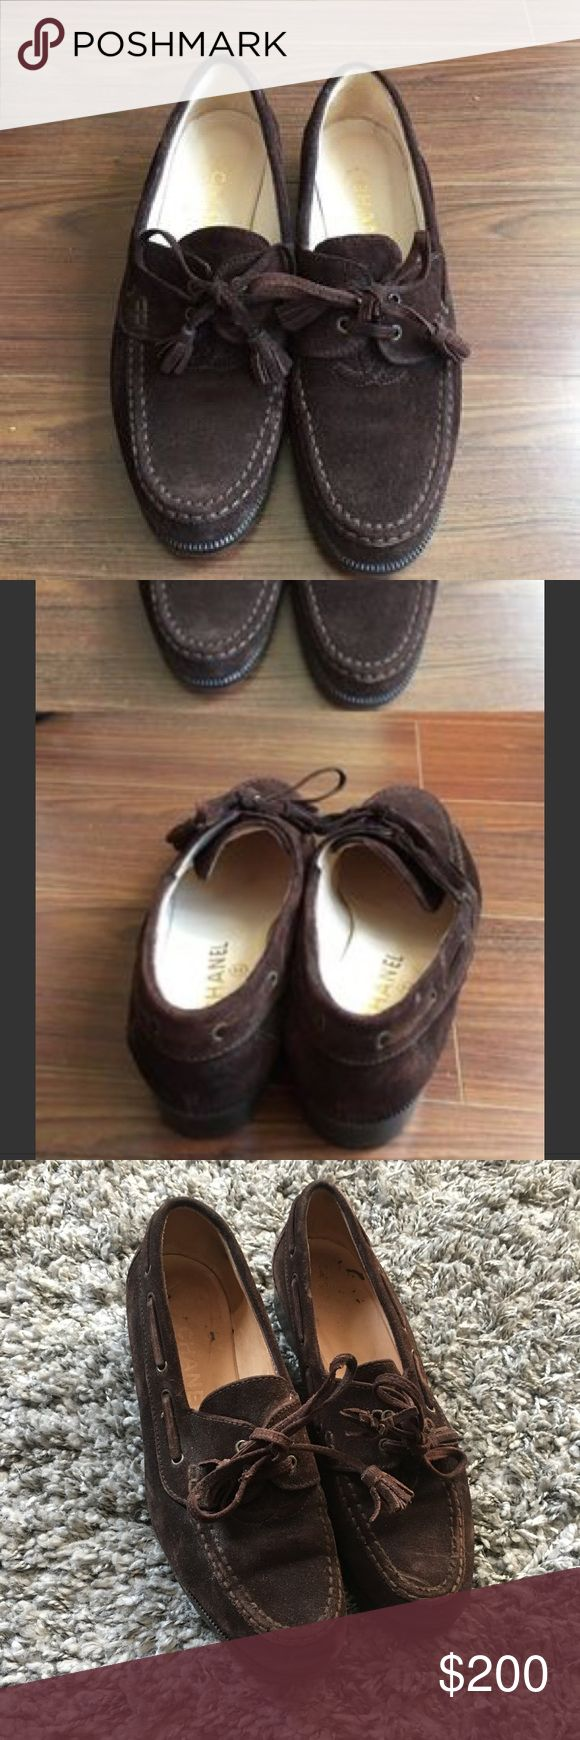 Vintage Chanel Brown Tie Suede Logo Loafers 38.5 8 Vintage and pre loved but still have plenty of life left! 38.5  ----  First two photos are from an old listing for the same shoes, last three are the actual pair for sale CHANEL Shoes Flats & Loafers